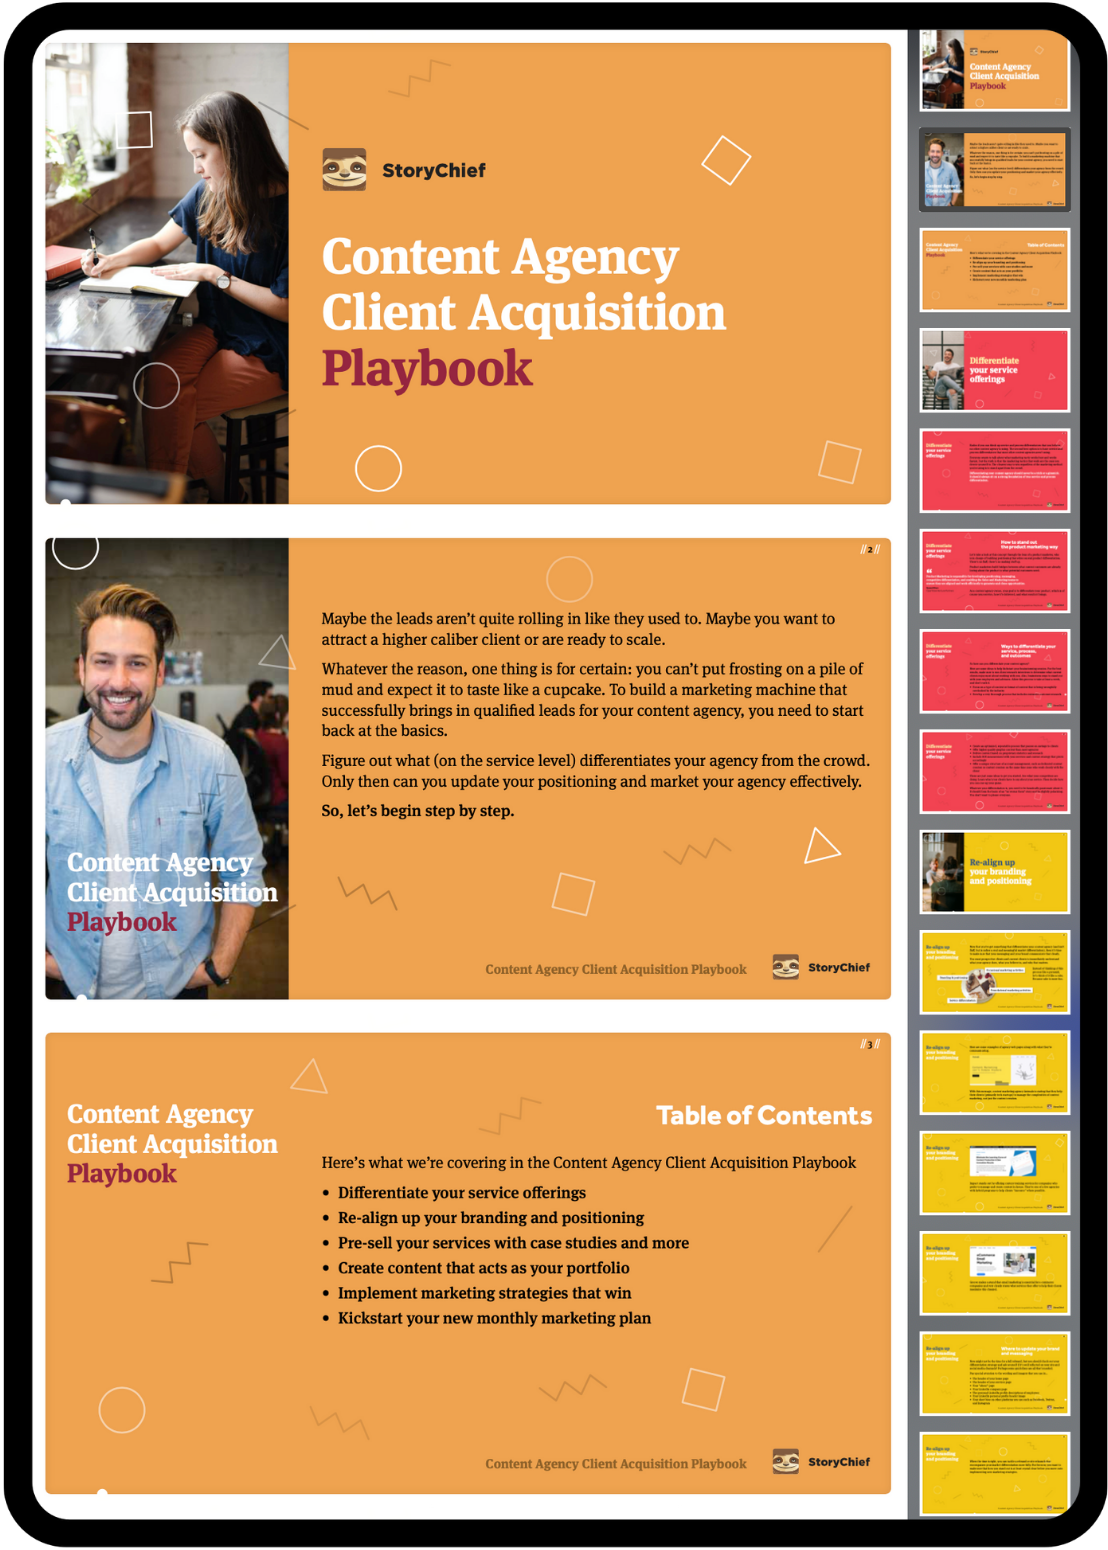 Content Agency Client Acquisition Playbook